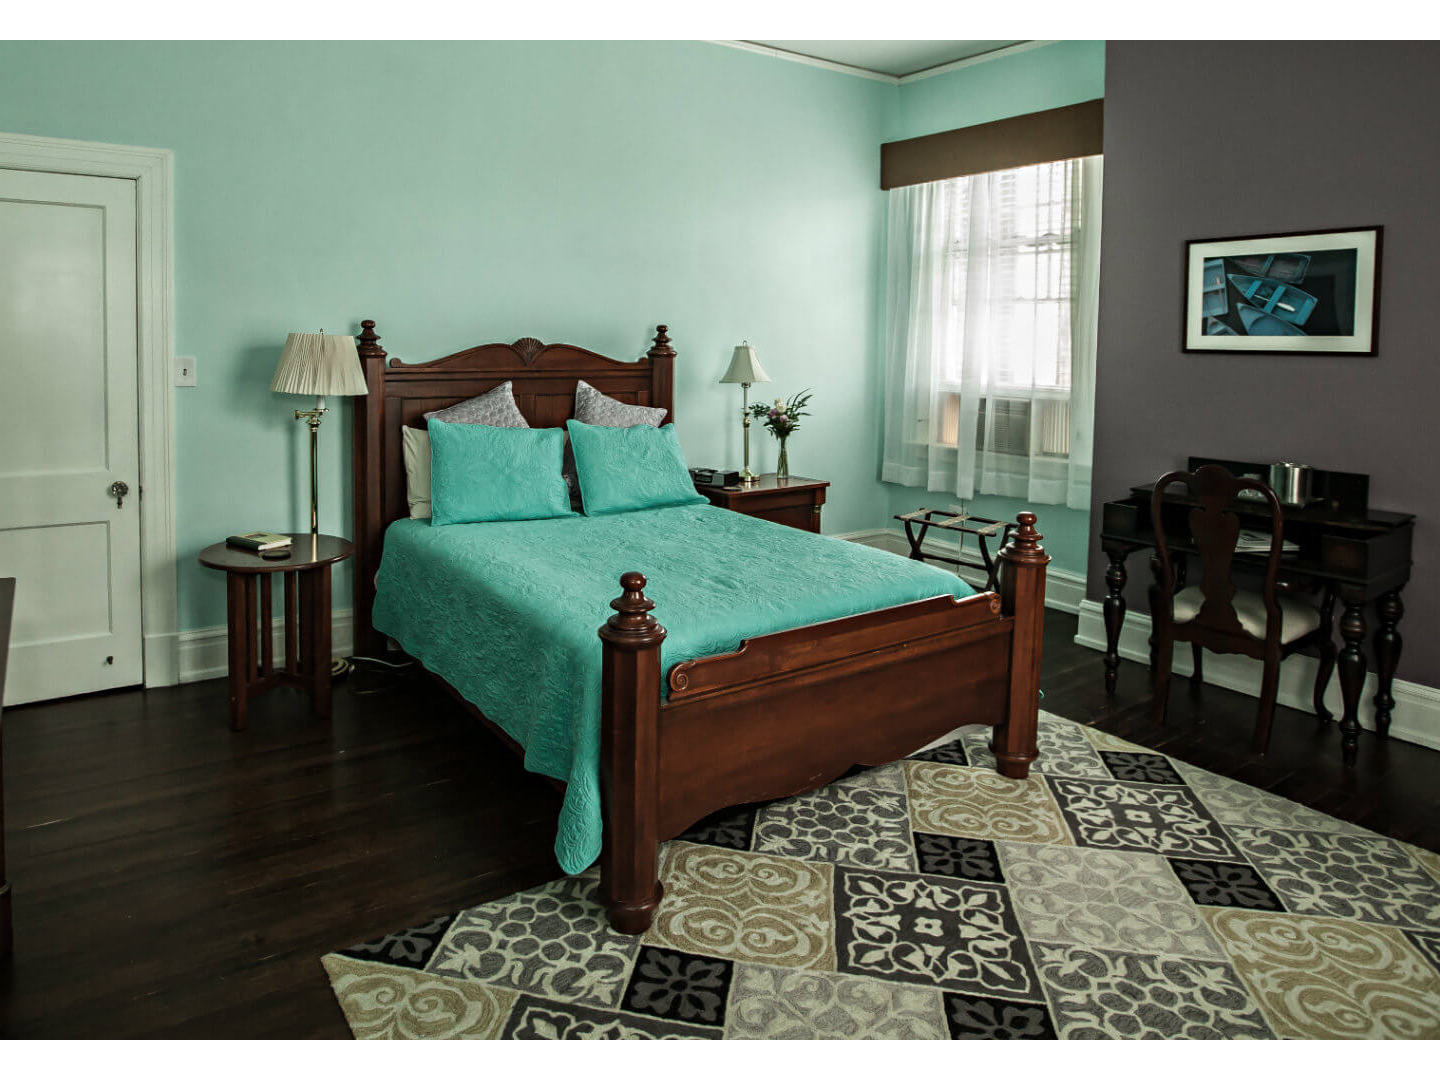 A bedroom with a bed and a chair in a room at Morehead Manor Bed and Breakfast.